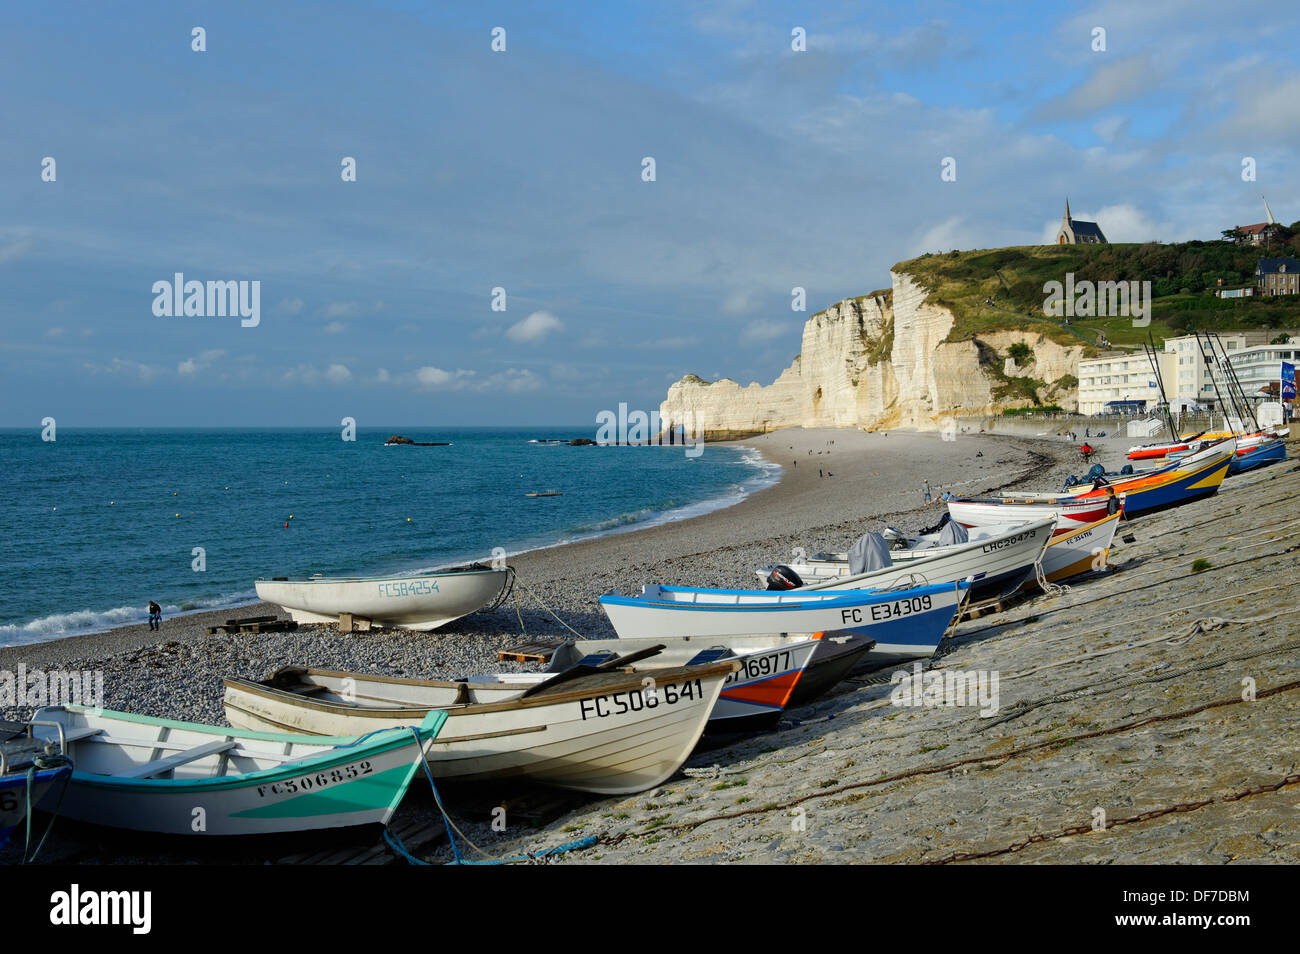 Fishing boats on a beach with white cliffs, Étretat, Département Seine-Maritime, Upper Normandy, France - Stock Image